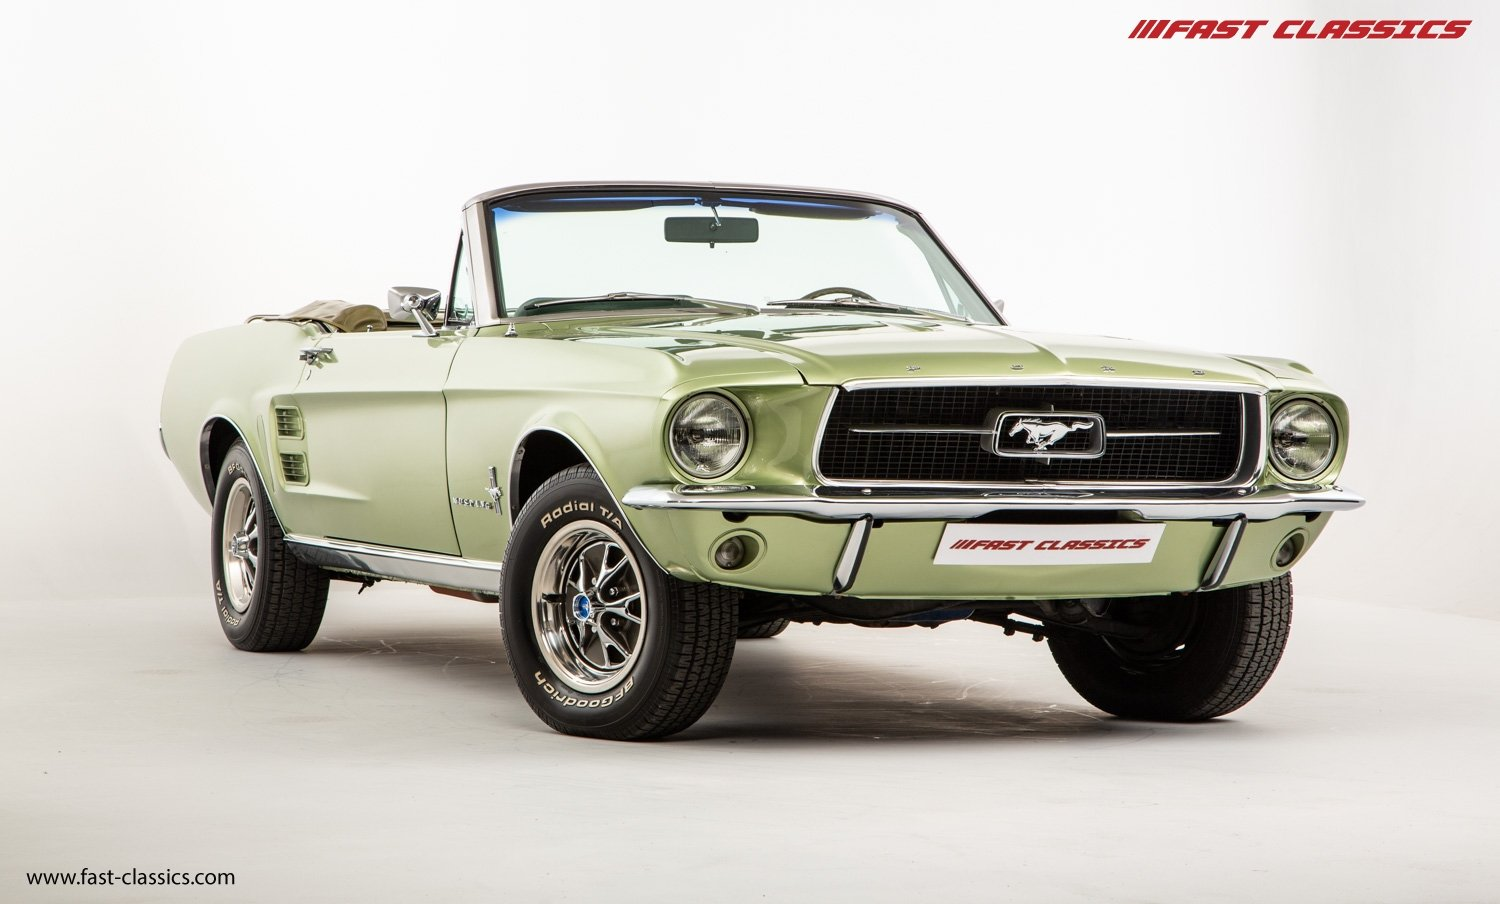 FORD MUSTANG CONVERTIBLE // 1967 FACTORY 4-SPEED MANUAL For Sale (picture 7 of 23)